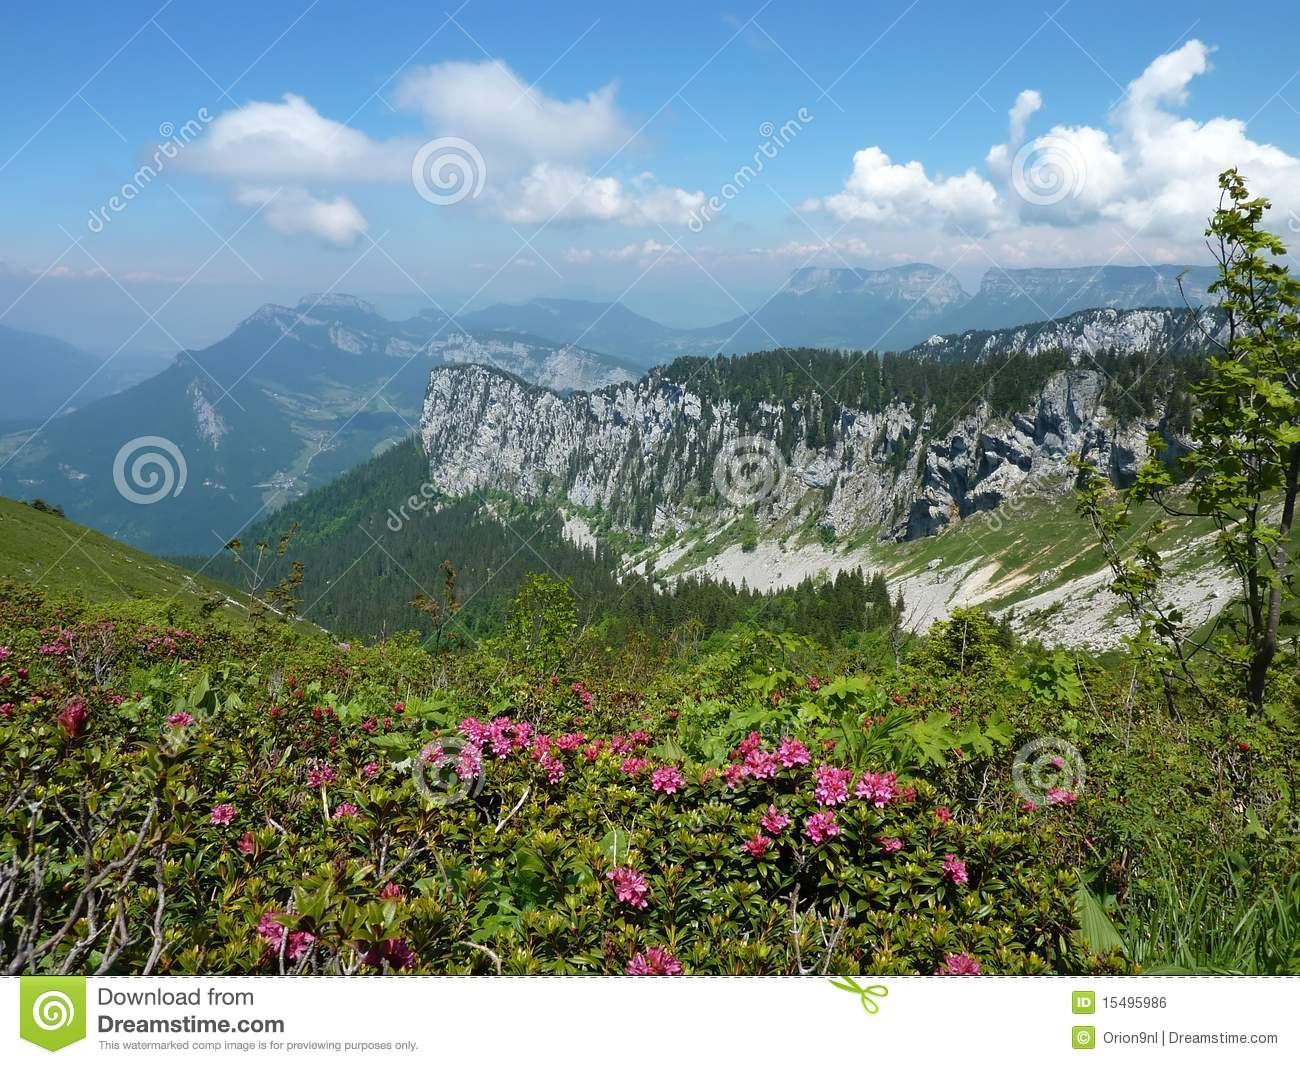 Alpine Roses in the Chartreuse